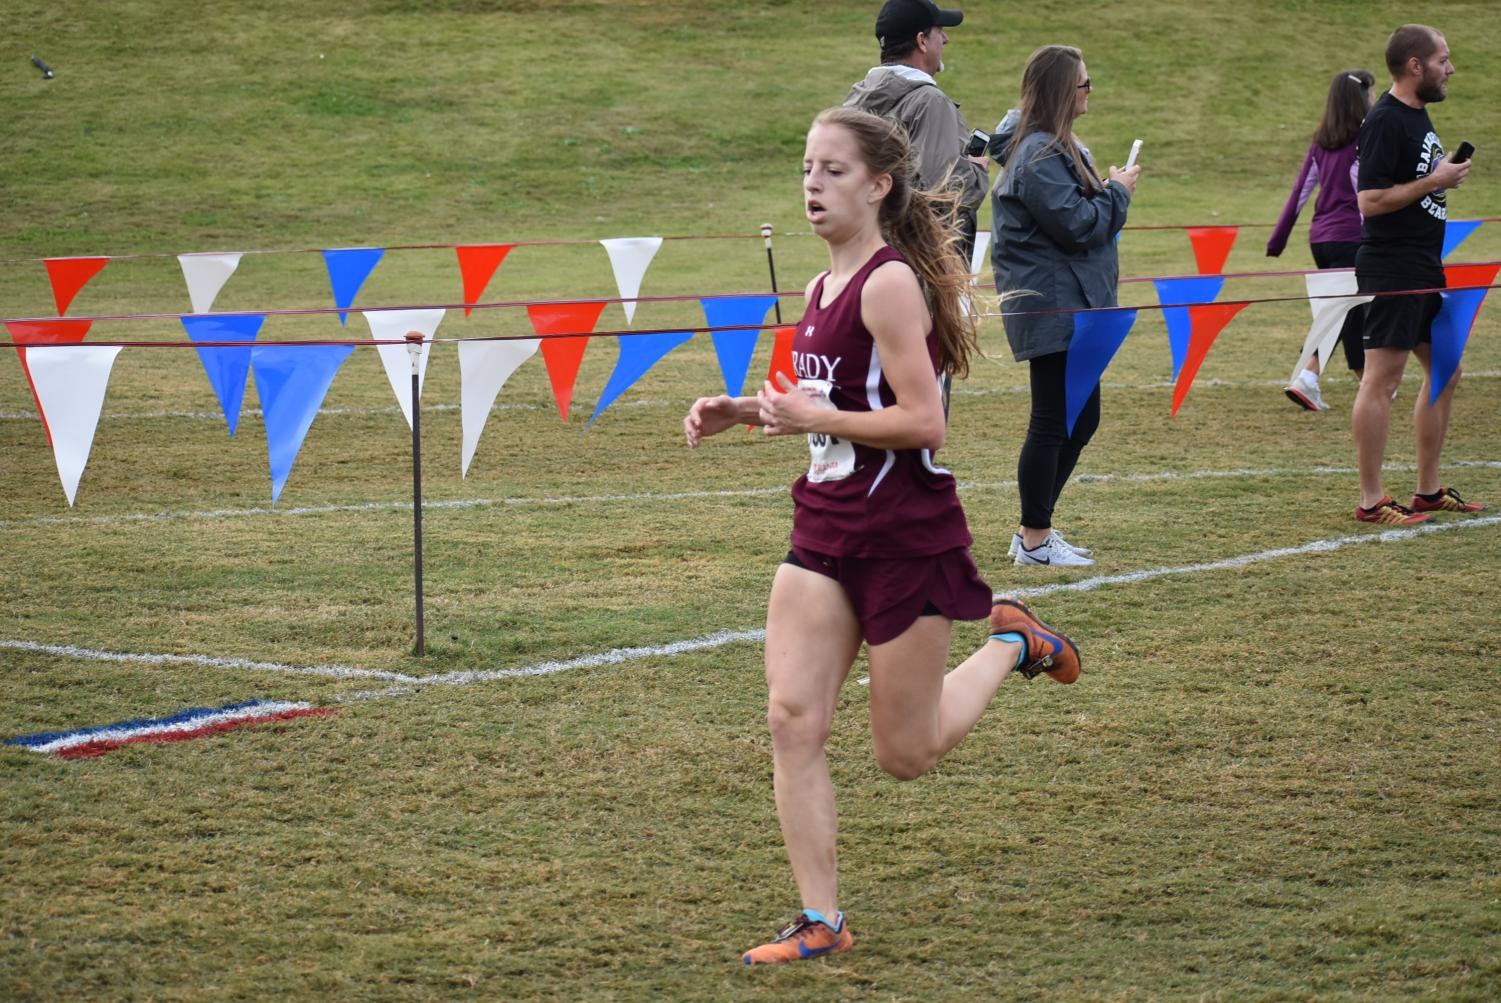 Senior Anna Tischer runs through the shoot into the finish at the state course in Carrollton. She placed second for Grady and 25th overall with a time of 21:16.59. This was Tischer's fourth and final state meet of her high school career.